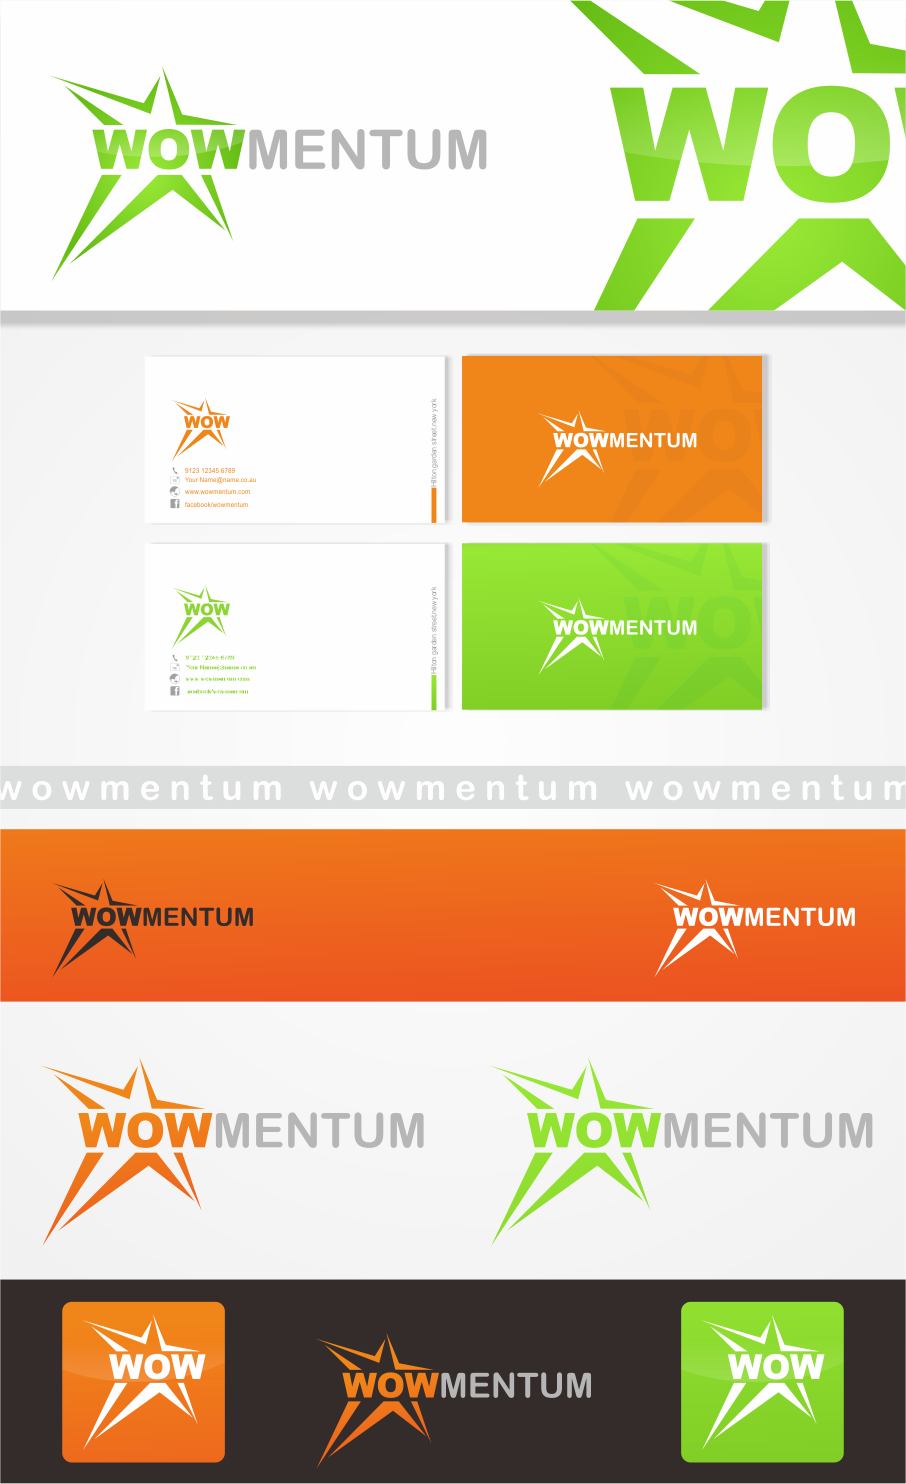 Help Wowmentum with a new logo